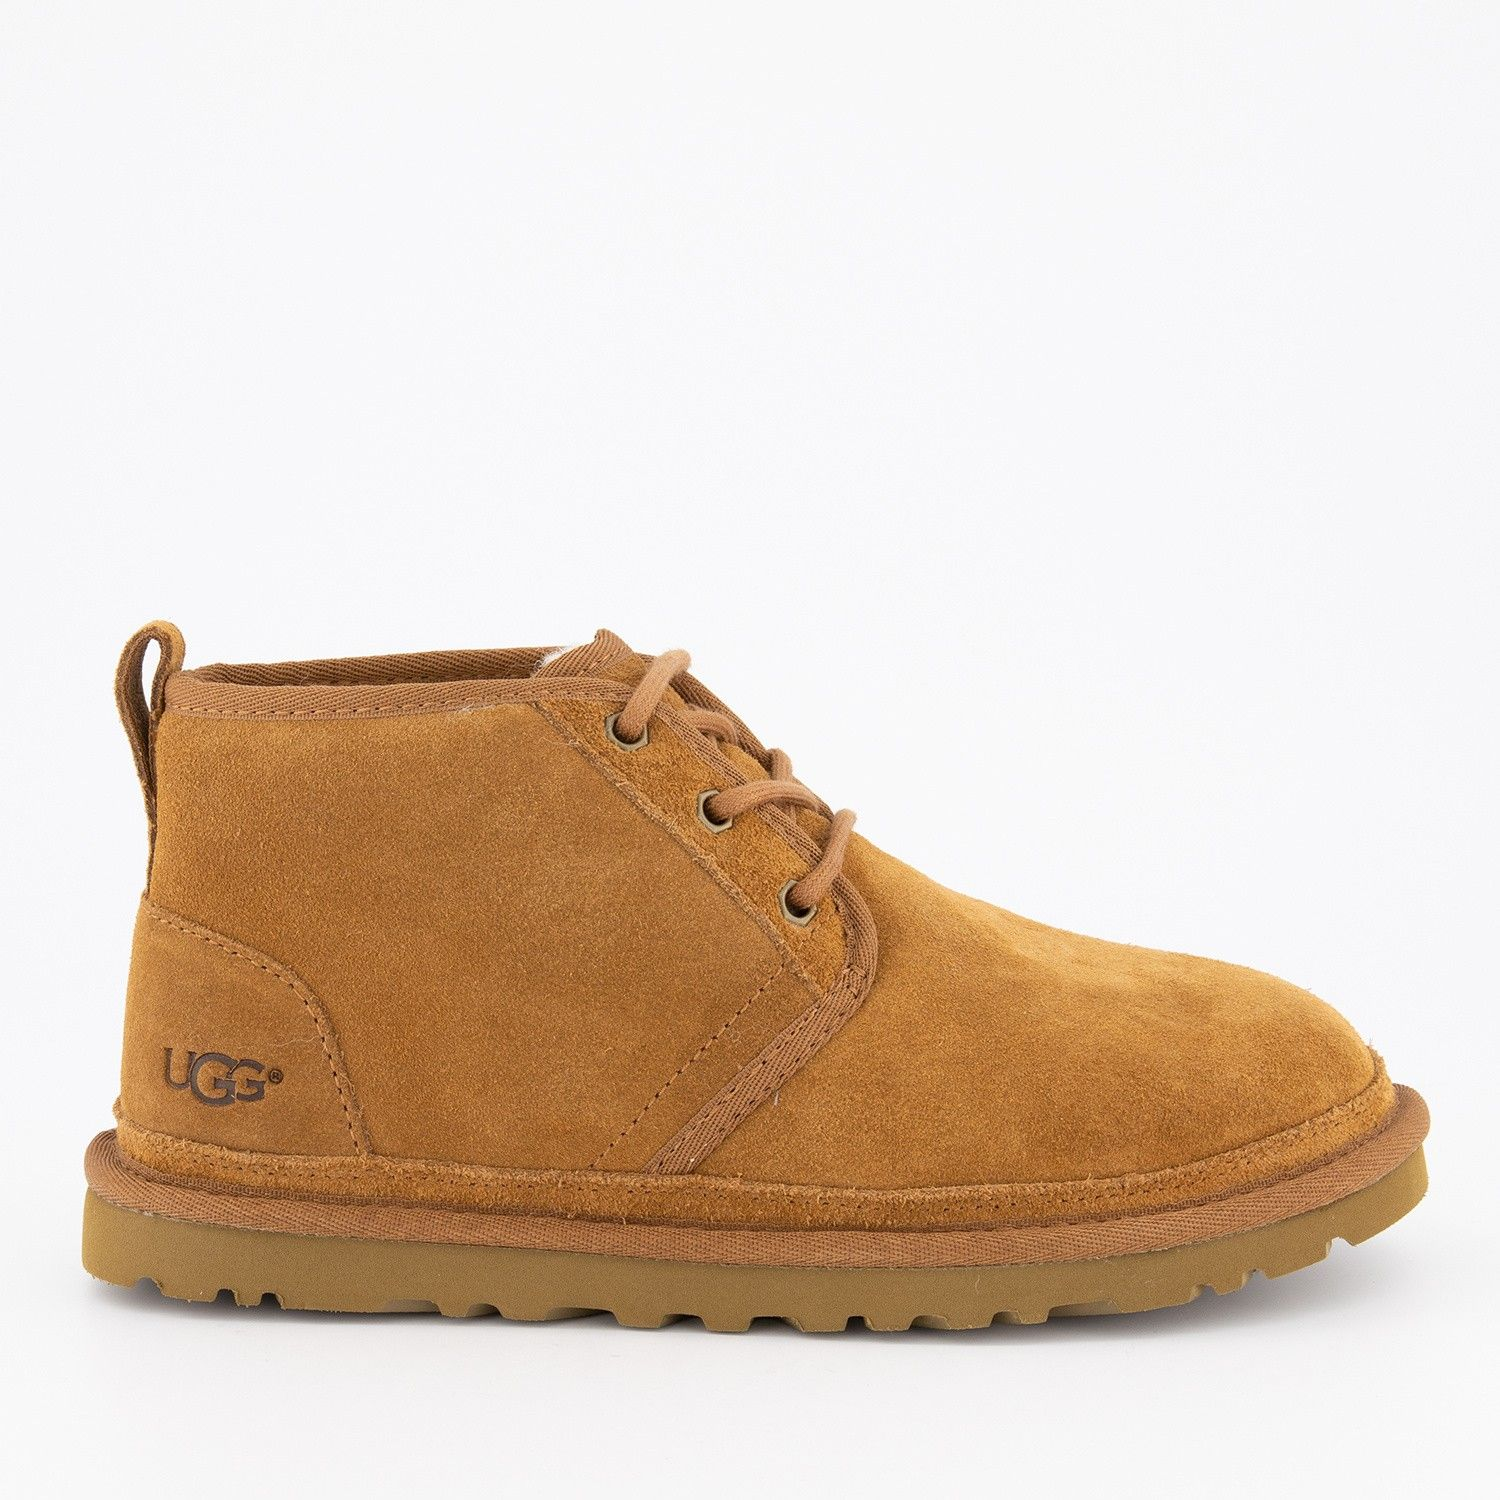 Picture of UGG 3236 mens boots camel